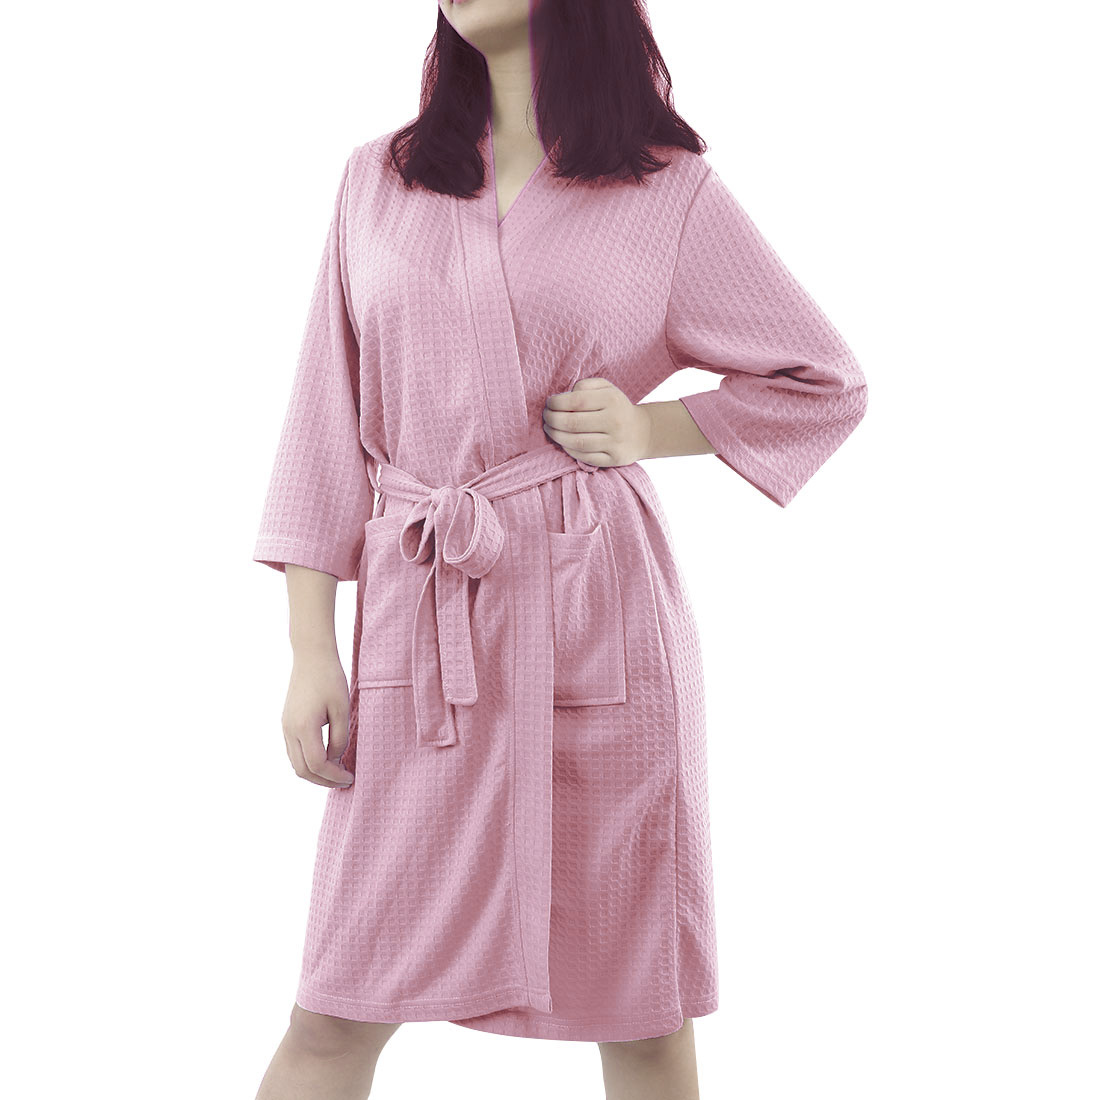 Women's 100% Polyester Lightweight Soft Warm Kimono Short Robe XL Pink